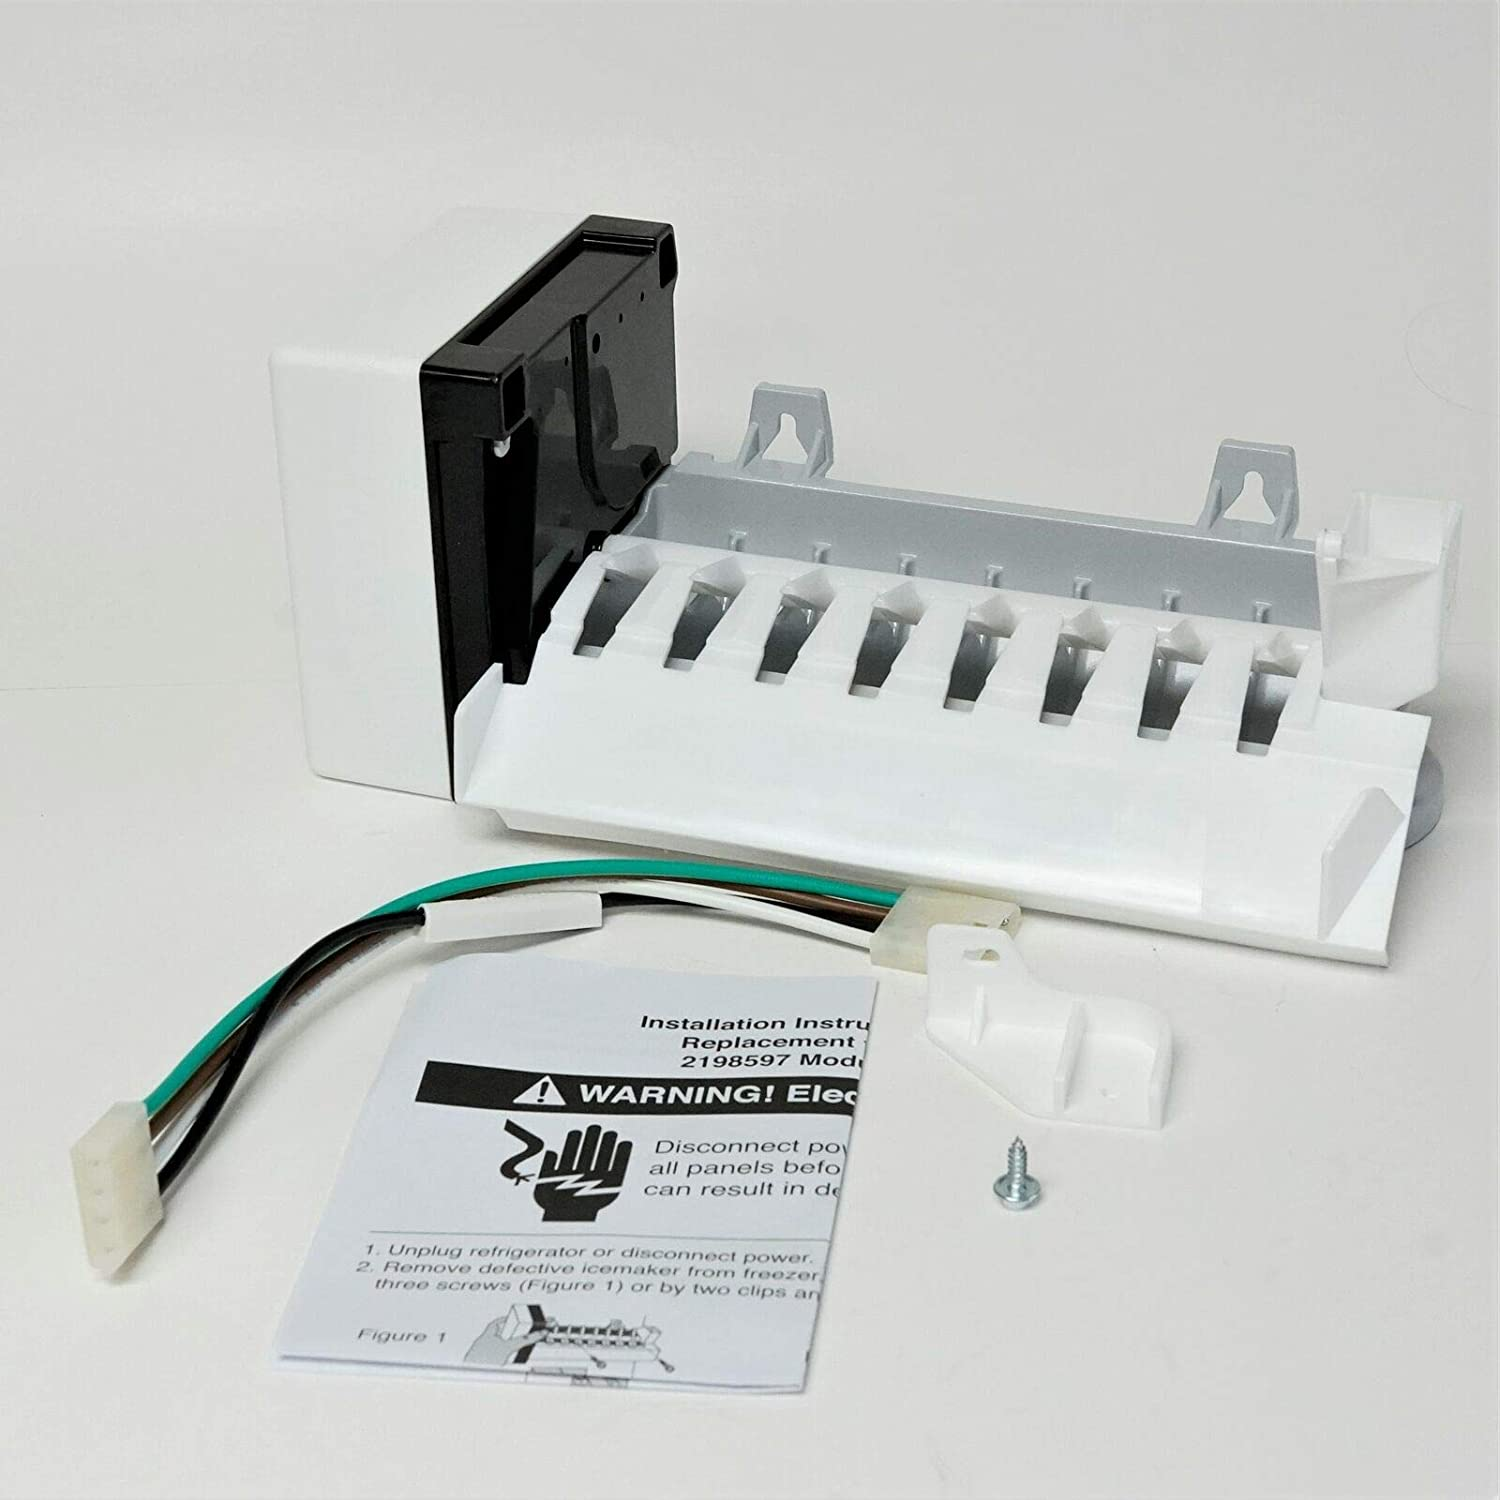 SAN-SAN RIM597 OFFer Replacement for Whirlpool Max 56% OFF Icemaker 626663 8 Cube